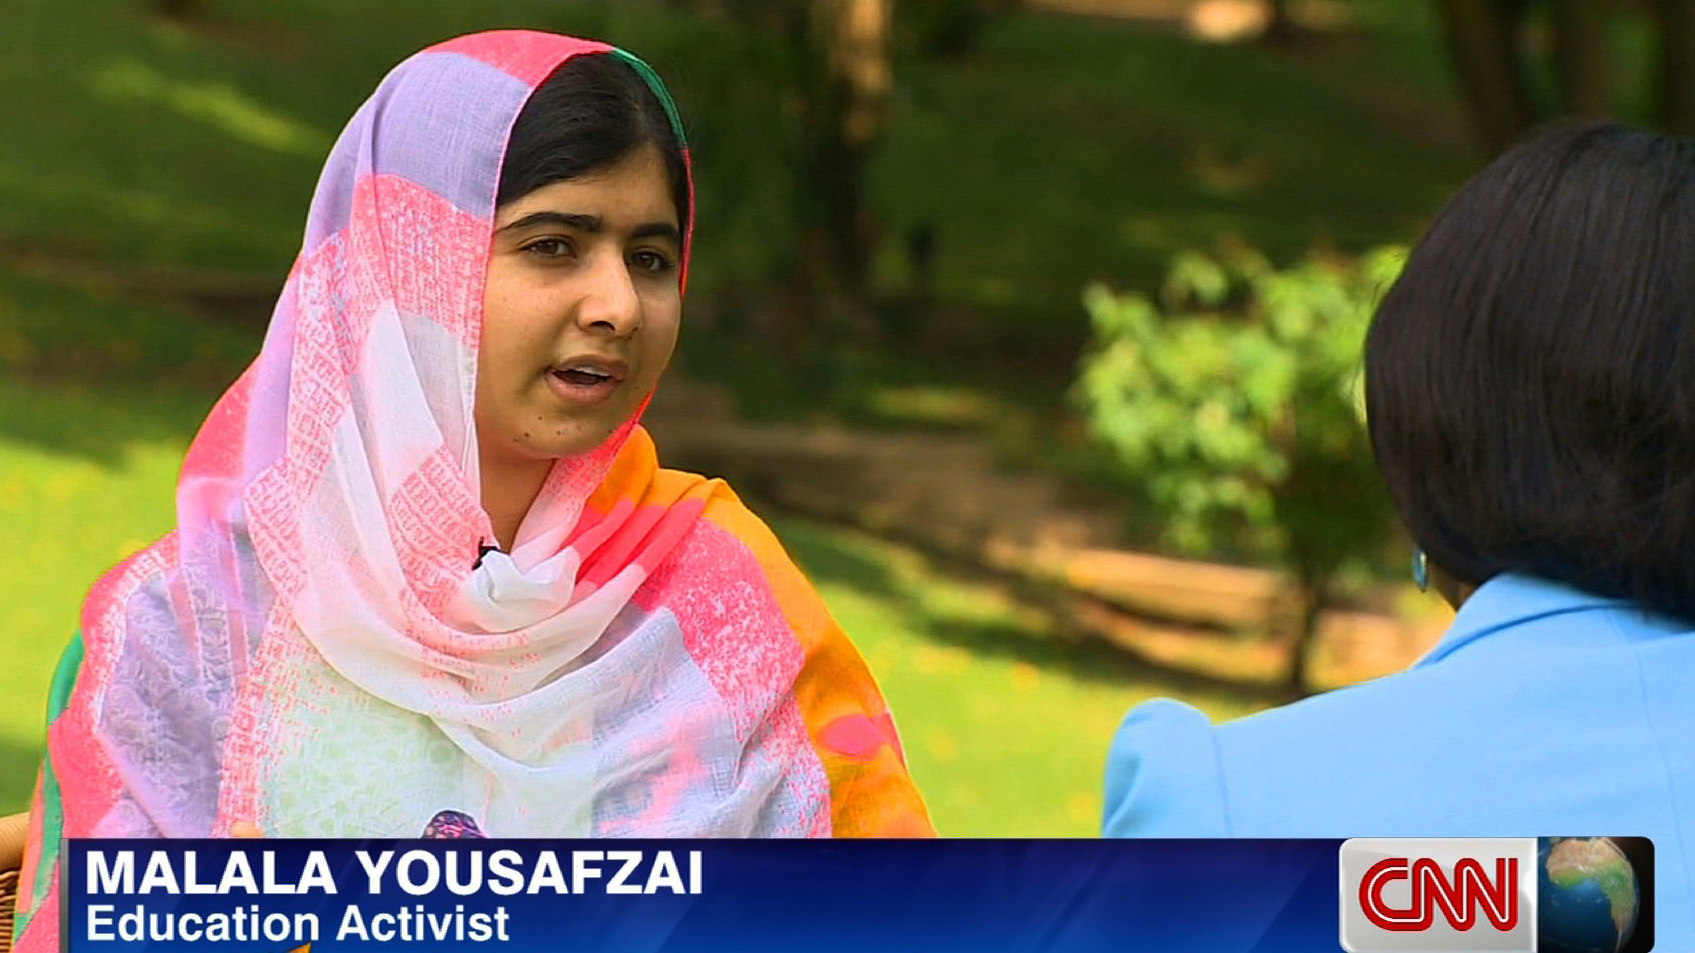 Malala Yousafzai talks to CNN's Isha Sesay about #BringBackOurGirls, turning 17